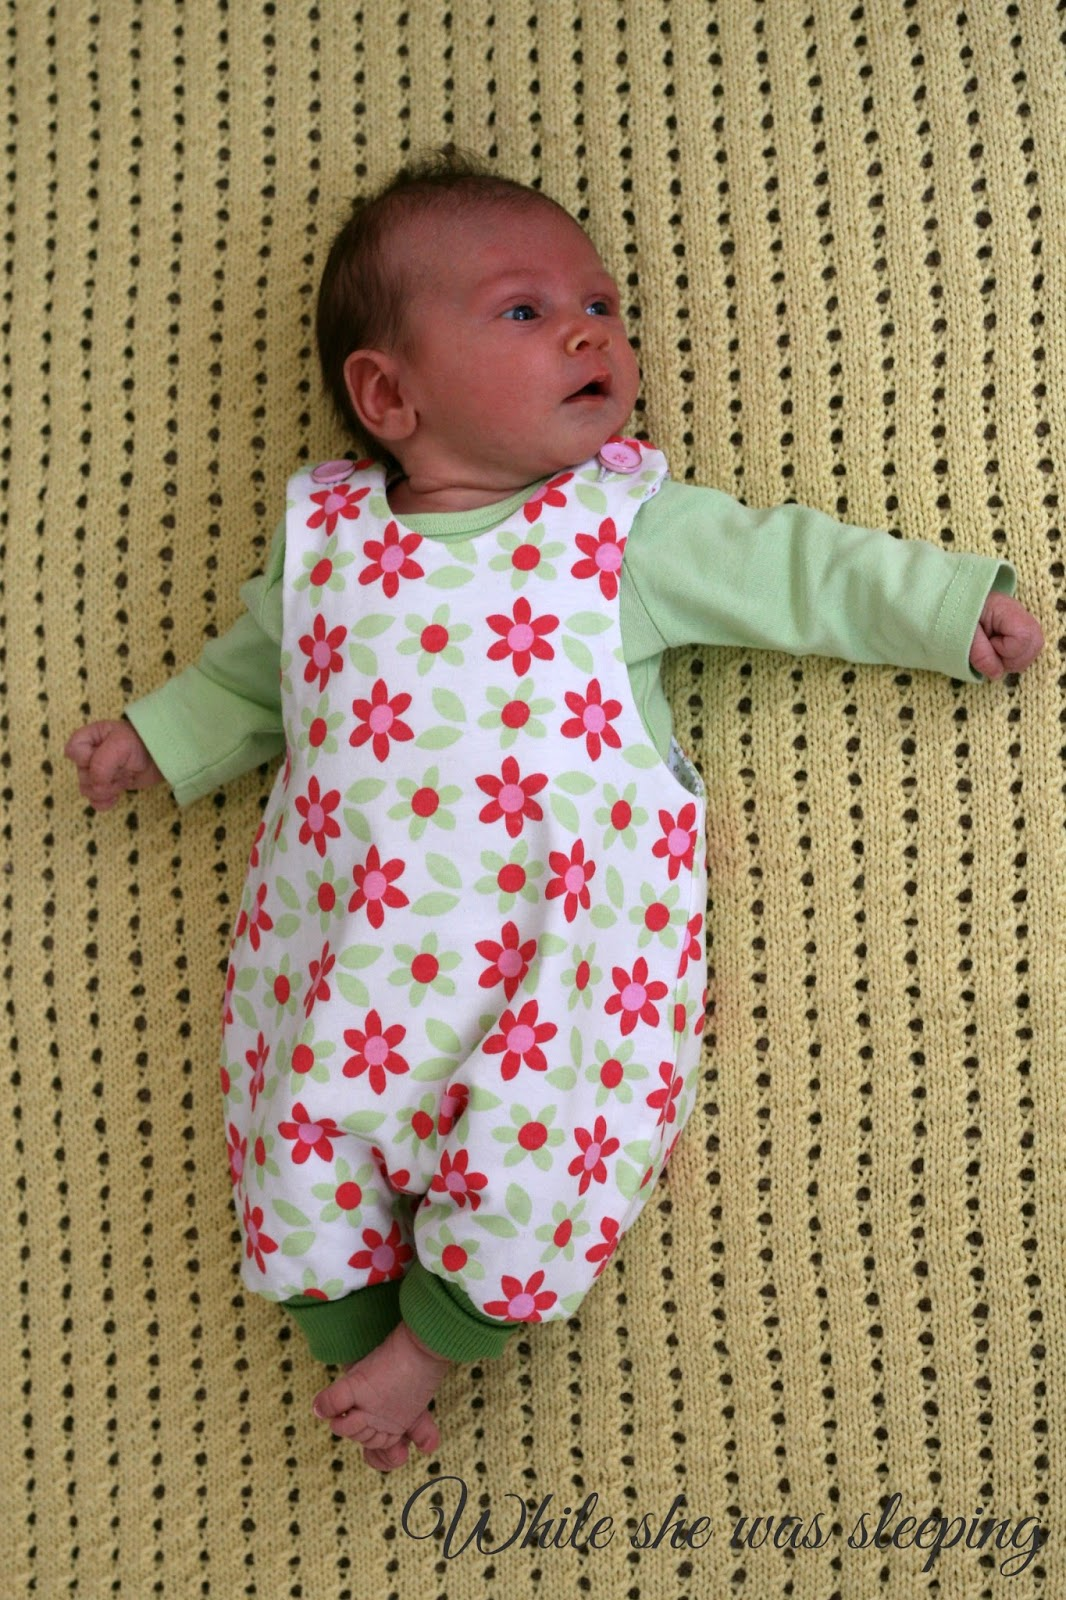 jumpy romper for my baby while she was sleeping